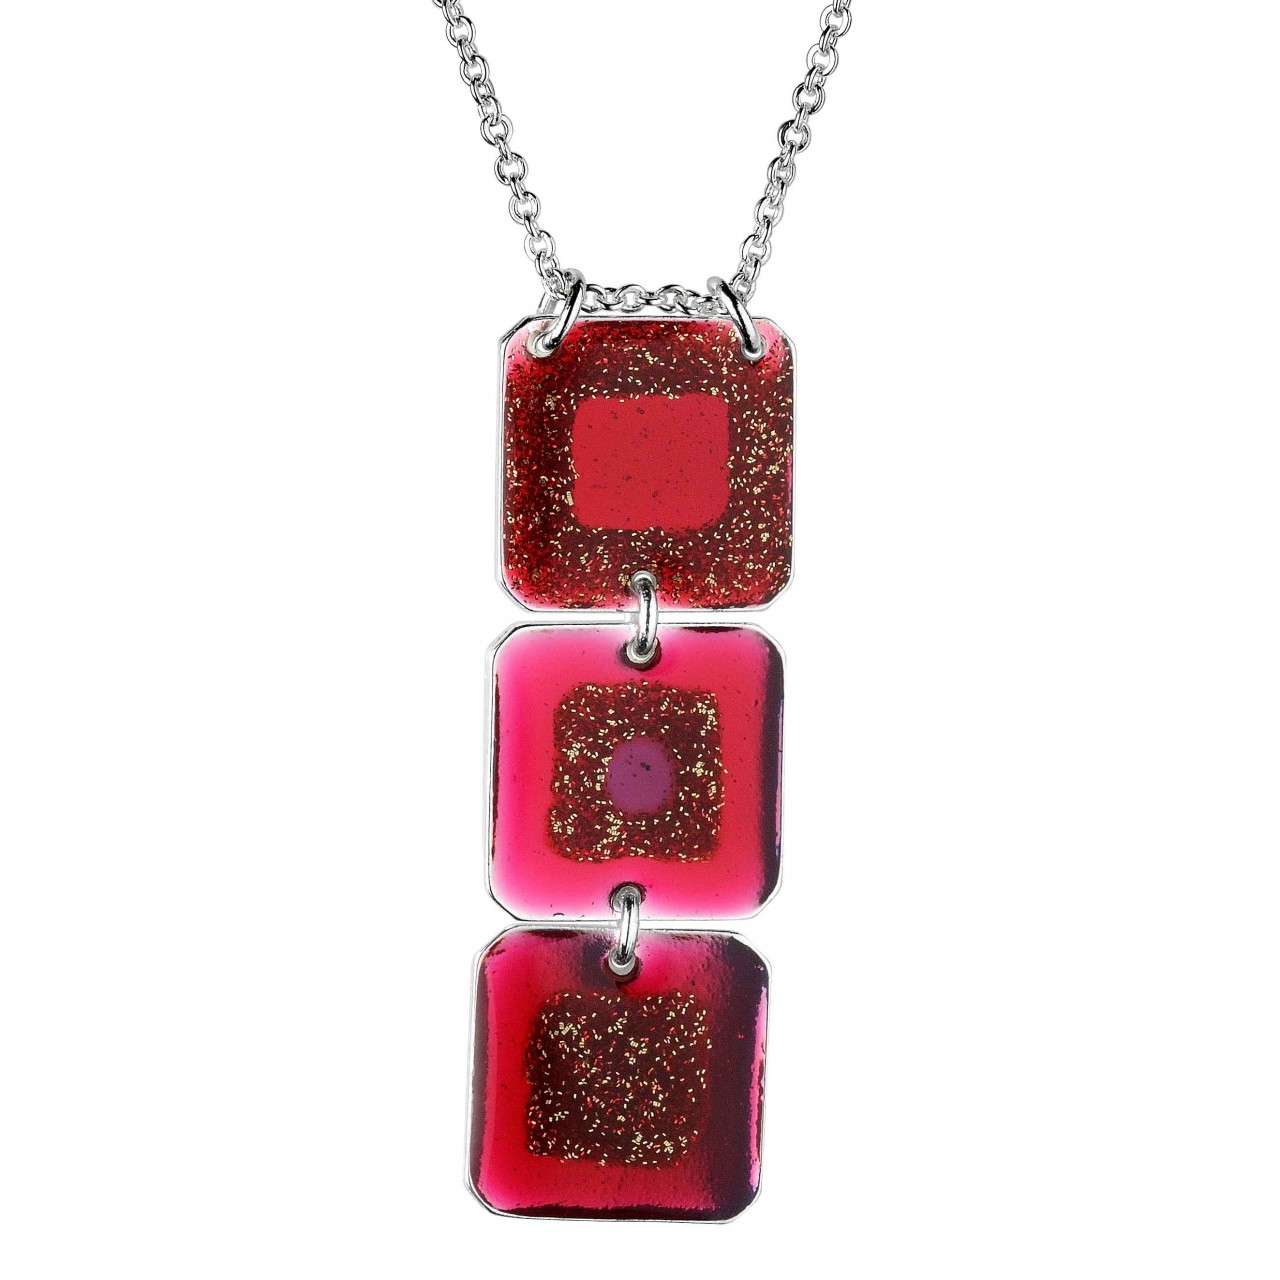 SKALLI PARIS - ORIGIN 08 Necklace colour GRIOTTE